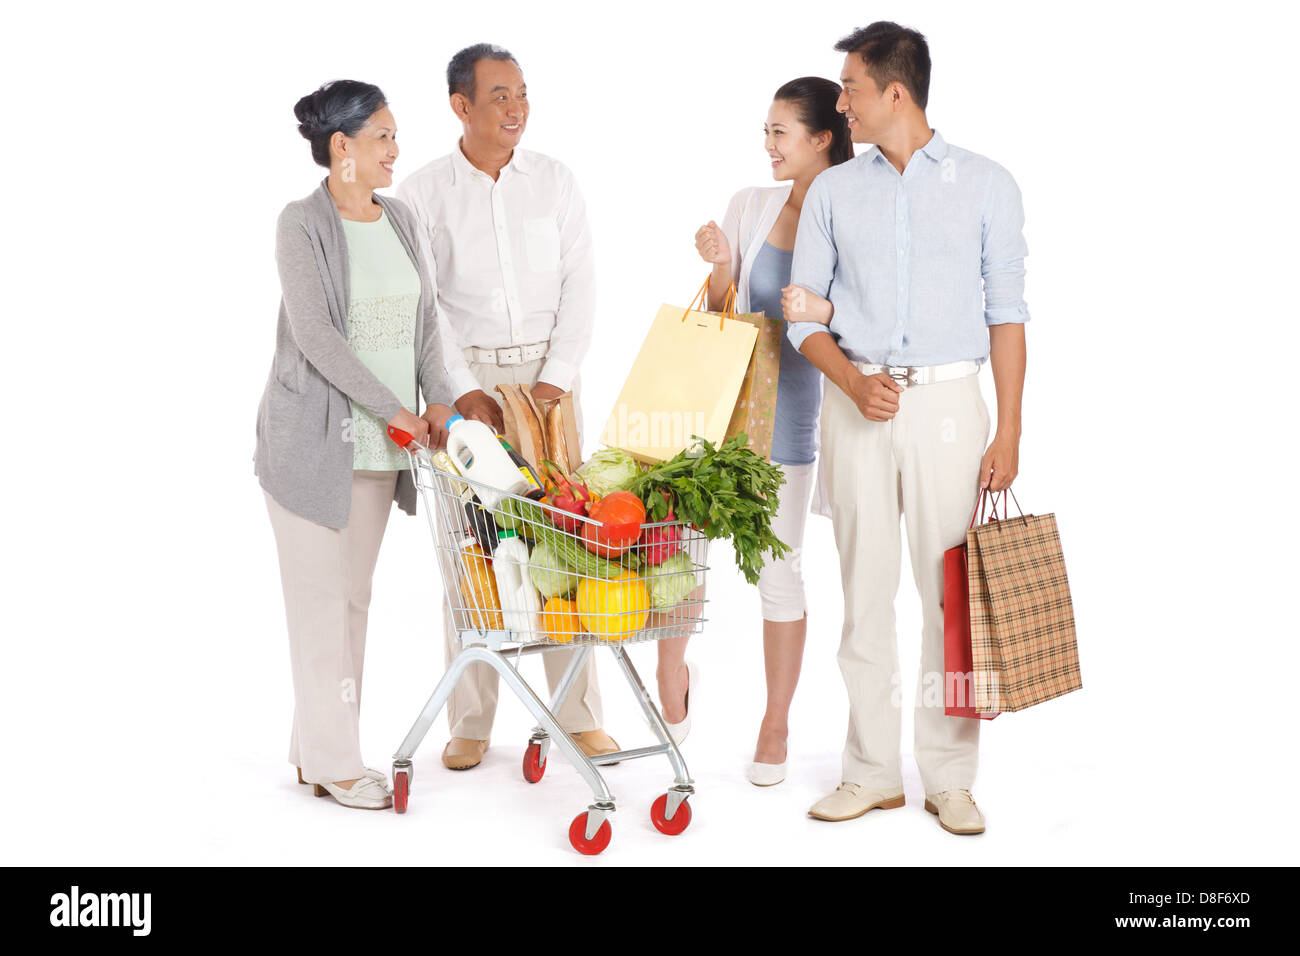 Old couple and young couple shopping with shopping cart - Stock Image